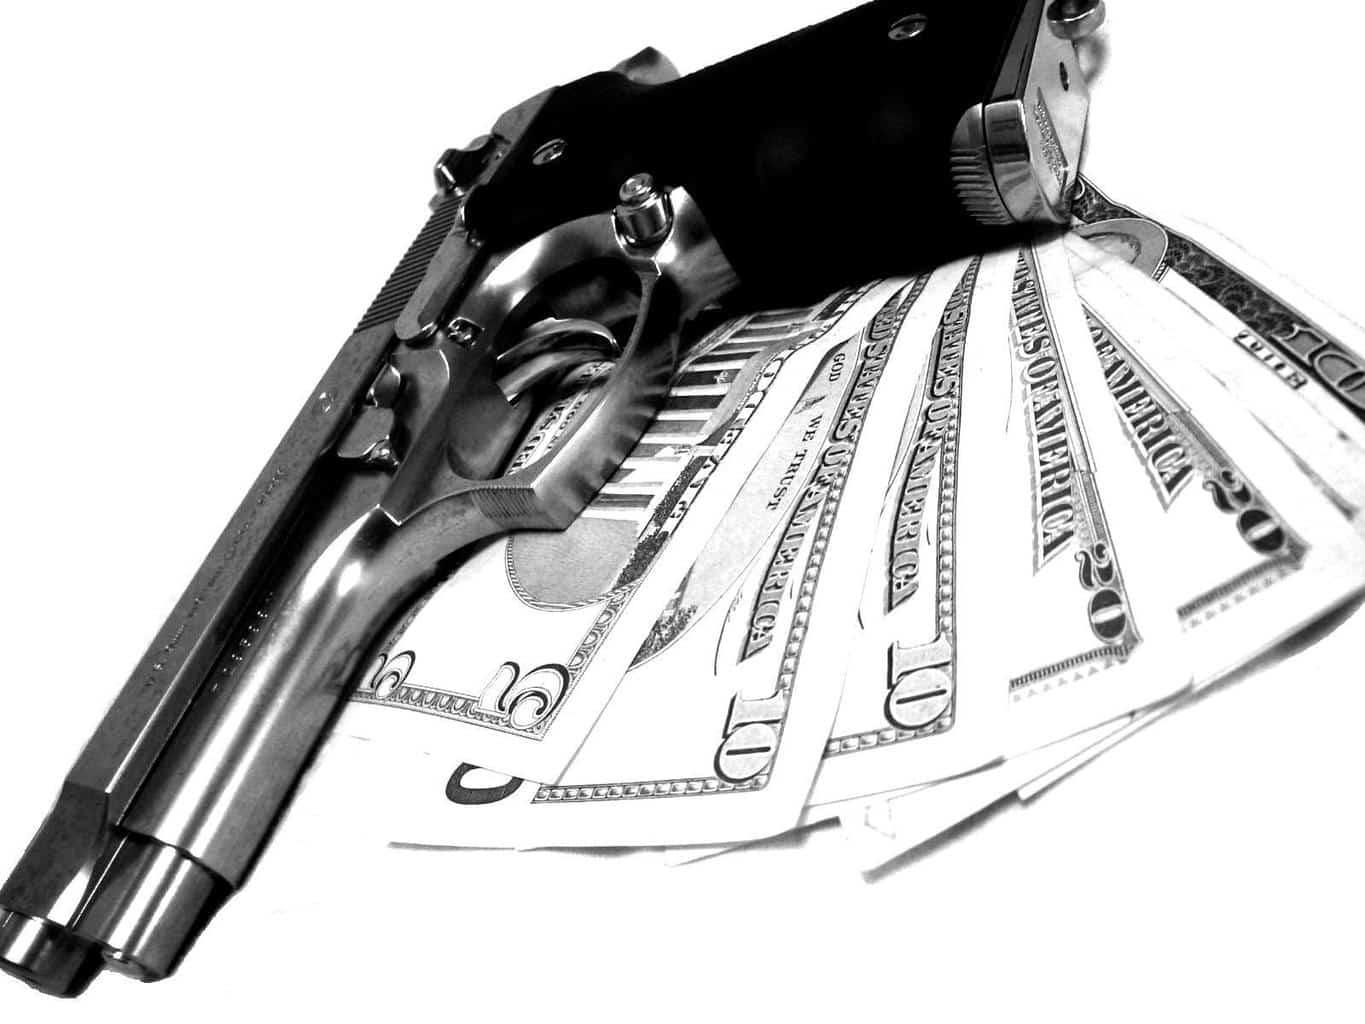 FFL Gun Transfer Policy Scottsdale - North Scottsdale Loan and Guns